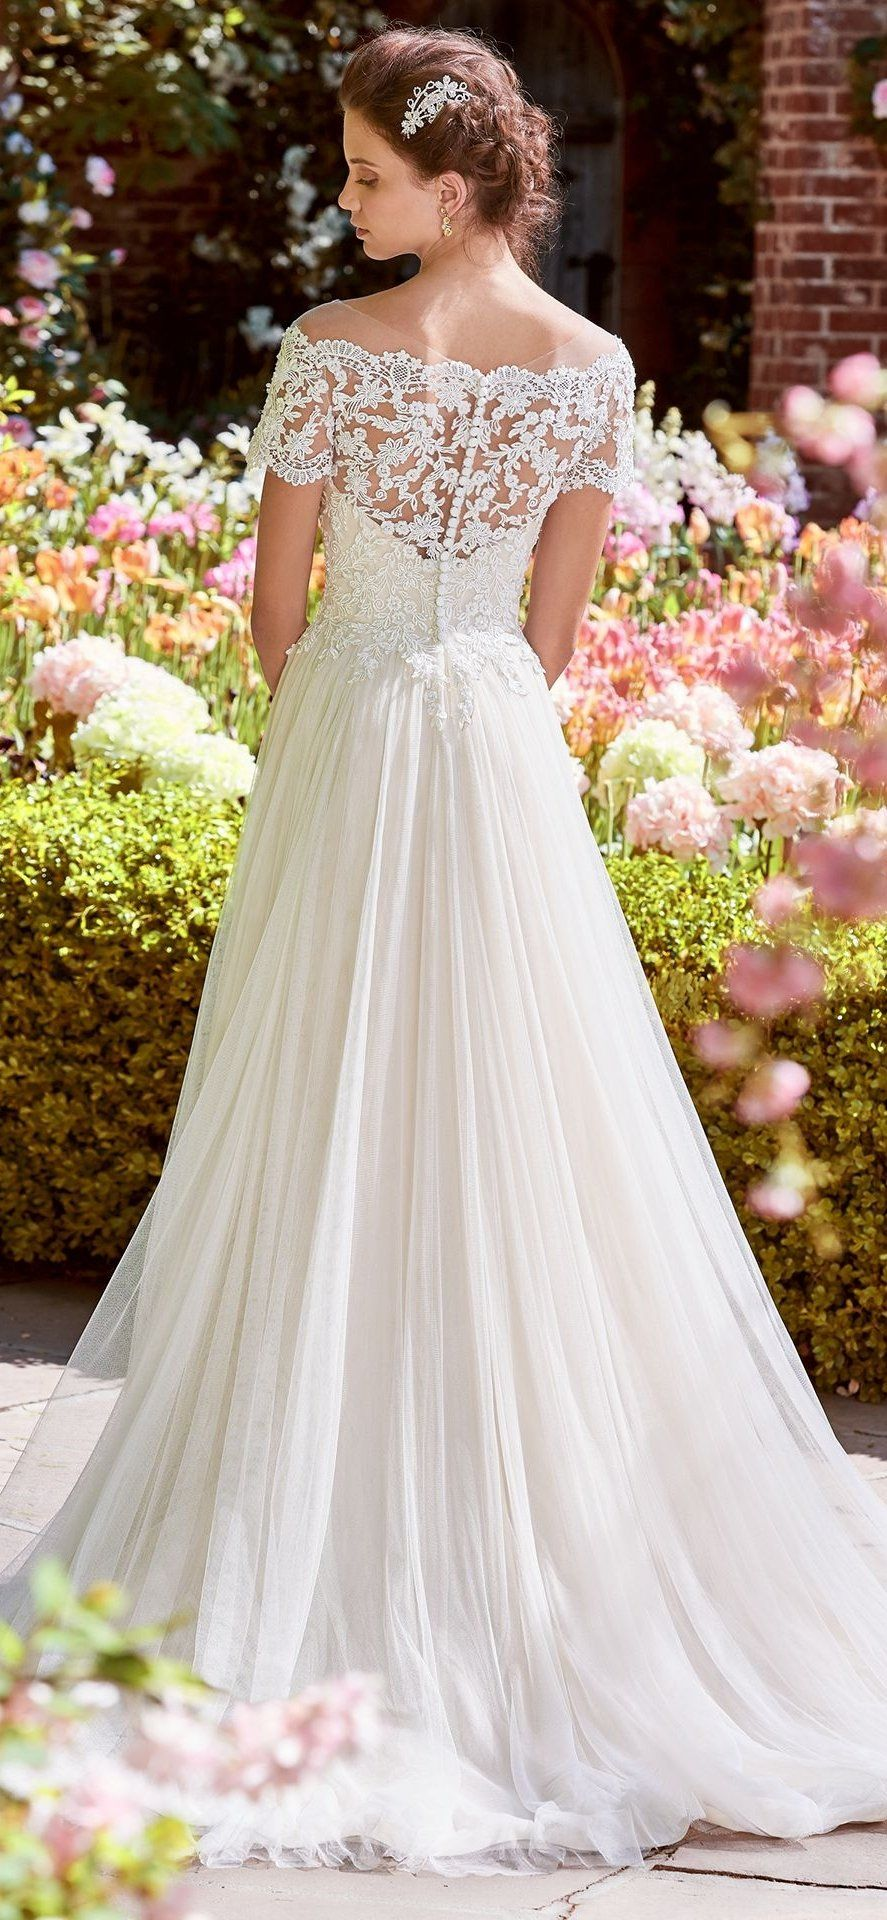 MICHELLE by Rebecca Ingram Wedding Dresses in 2019  7c32a0db1852